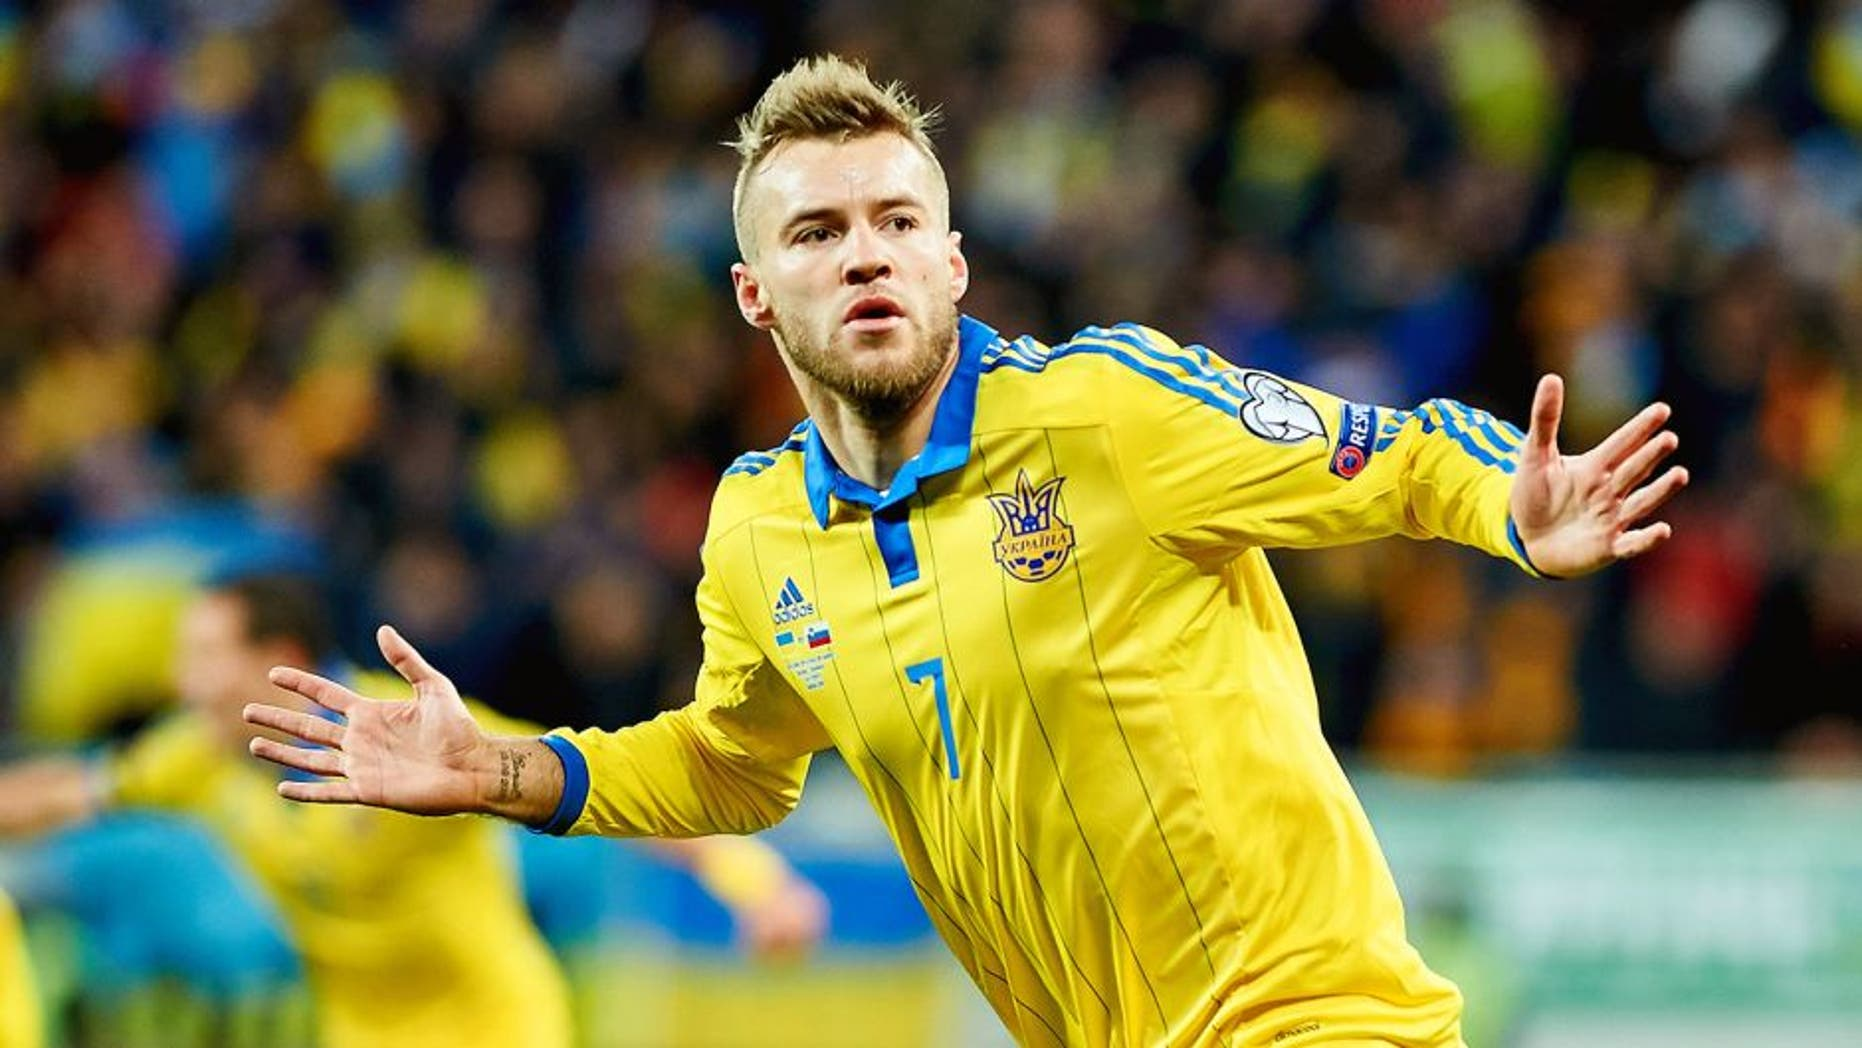 UKRAINE, LVIV - NOVEMBER 14: Andriy Yarmolenko from Ukraine celebrates after scoring the first goal during the UEFA EURO 2016 Play-off for Final Tournament, First leg between Ukraine and Slovenia at Lviv Arena on November 14, 2015 in Lviv, Ukraine. (Photo by Adam Nurkiewicz/Getty Images)